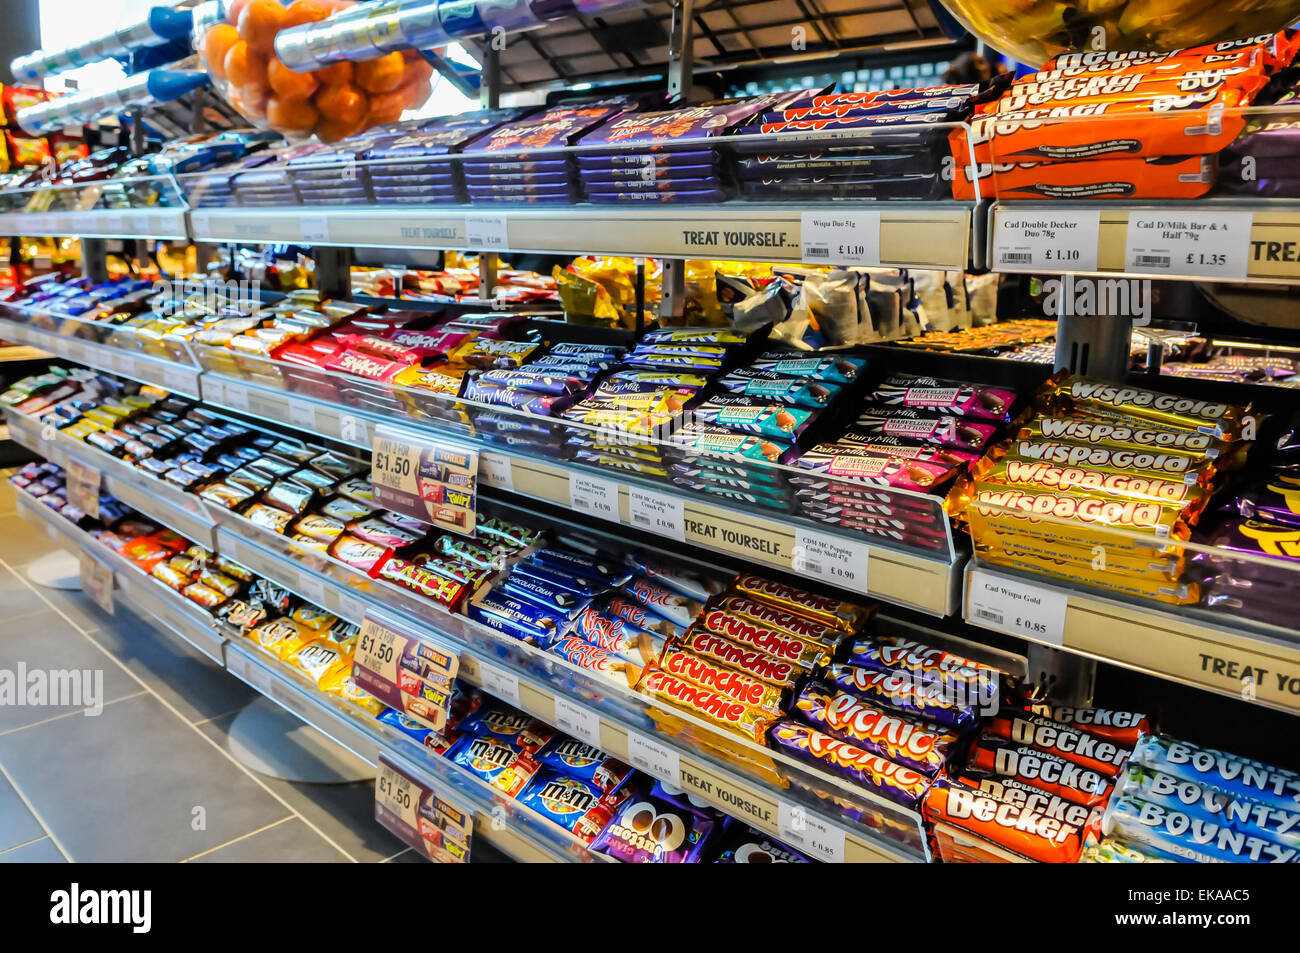 sweets and chocolate bars on sale in a motorway service. Black Bedroom Furniture Sets. Home Design Ideas